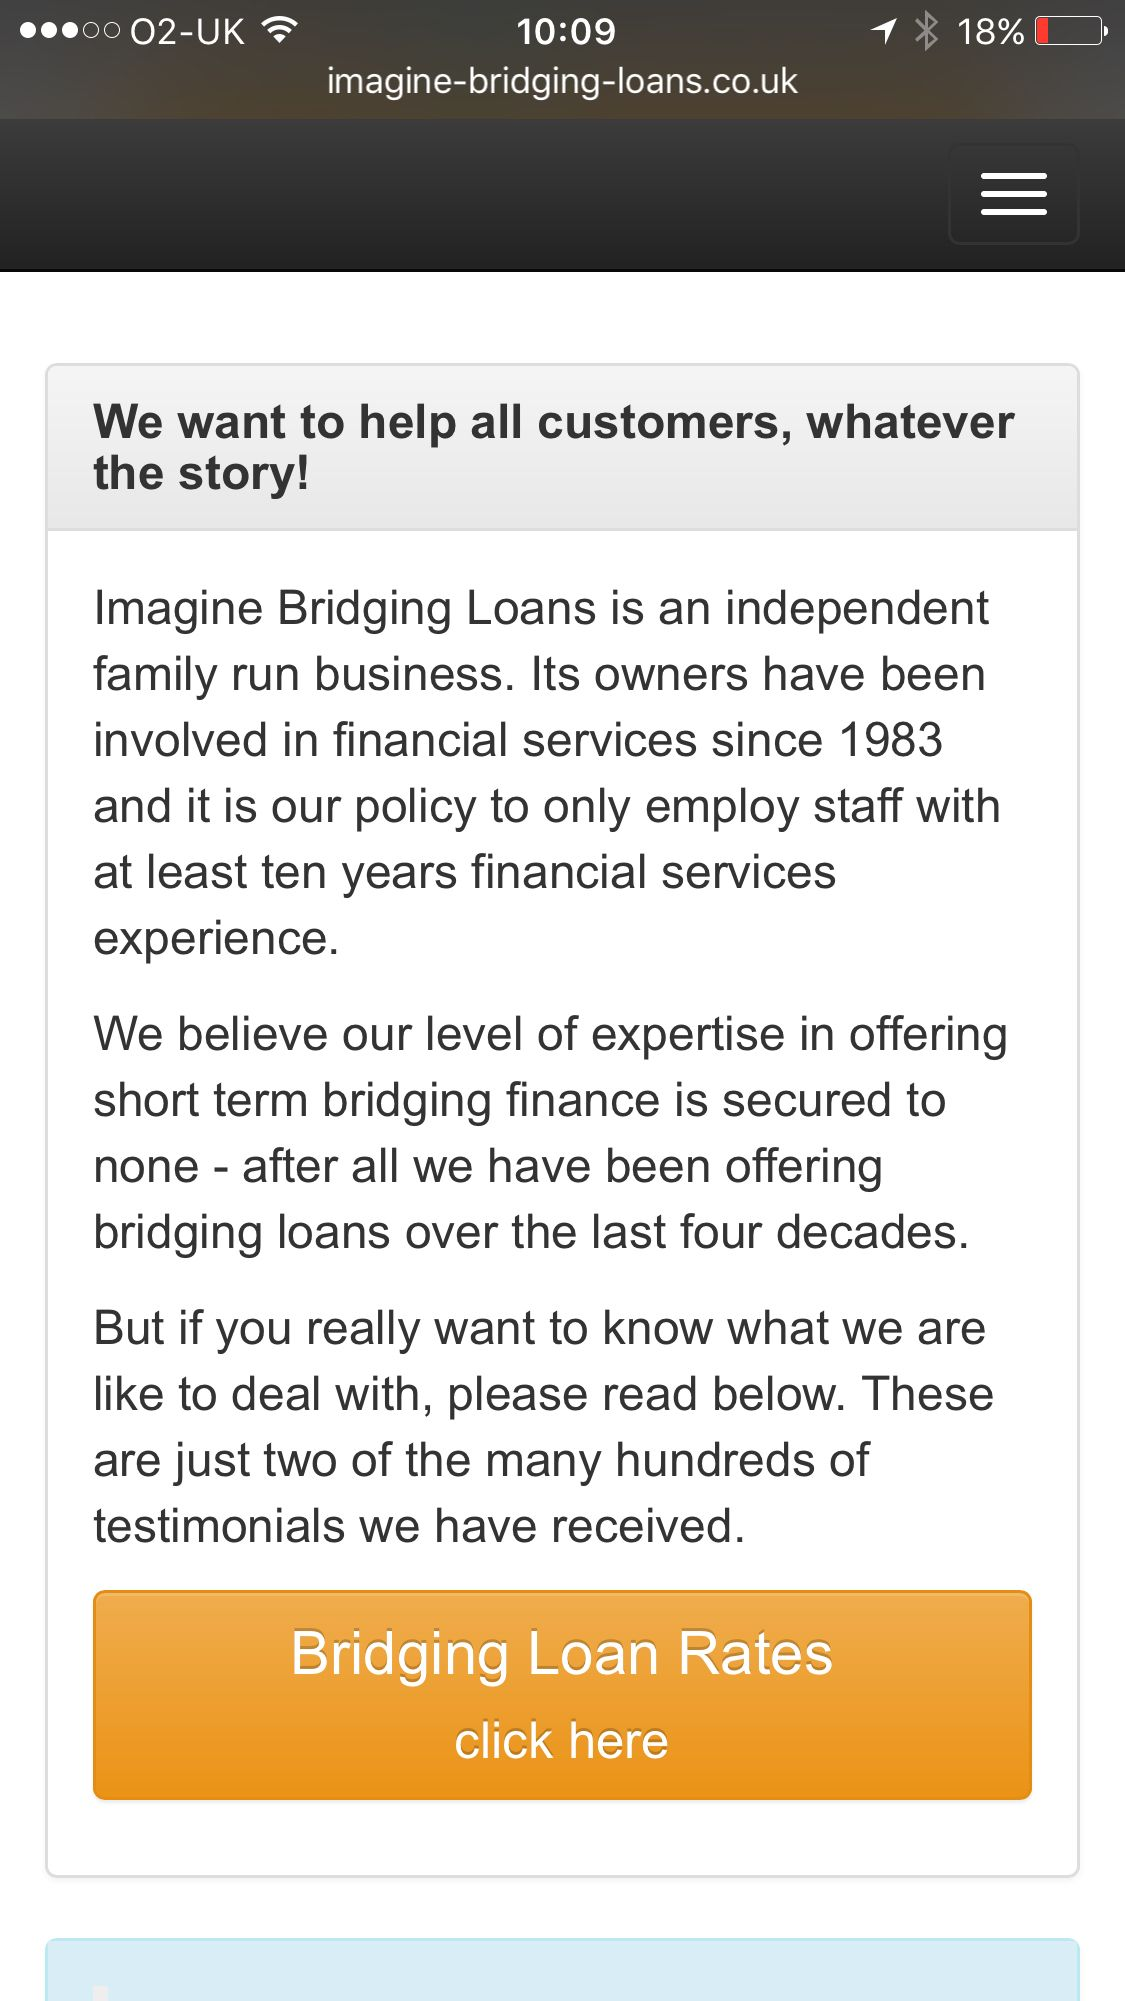 What's your story? WE RECOMMEND THAT YOU SEEK INDEPENDENT